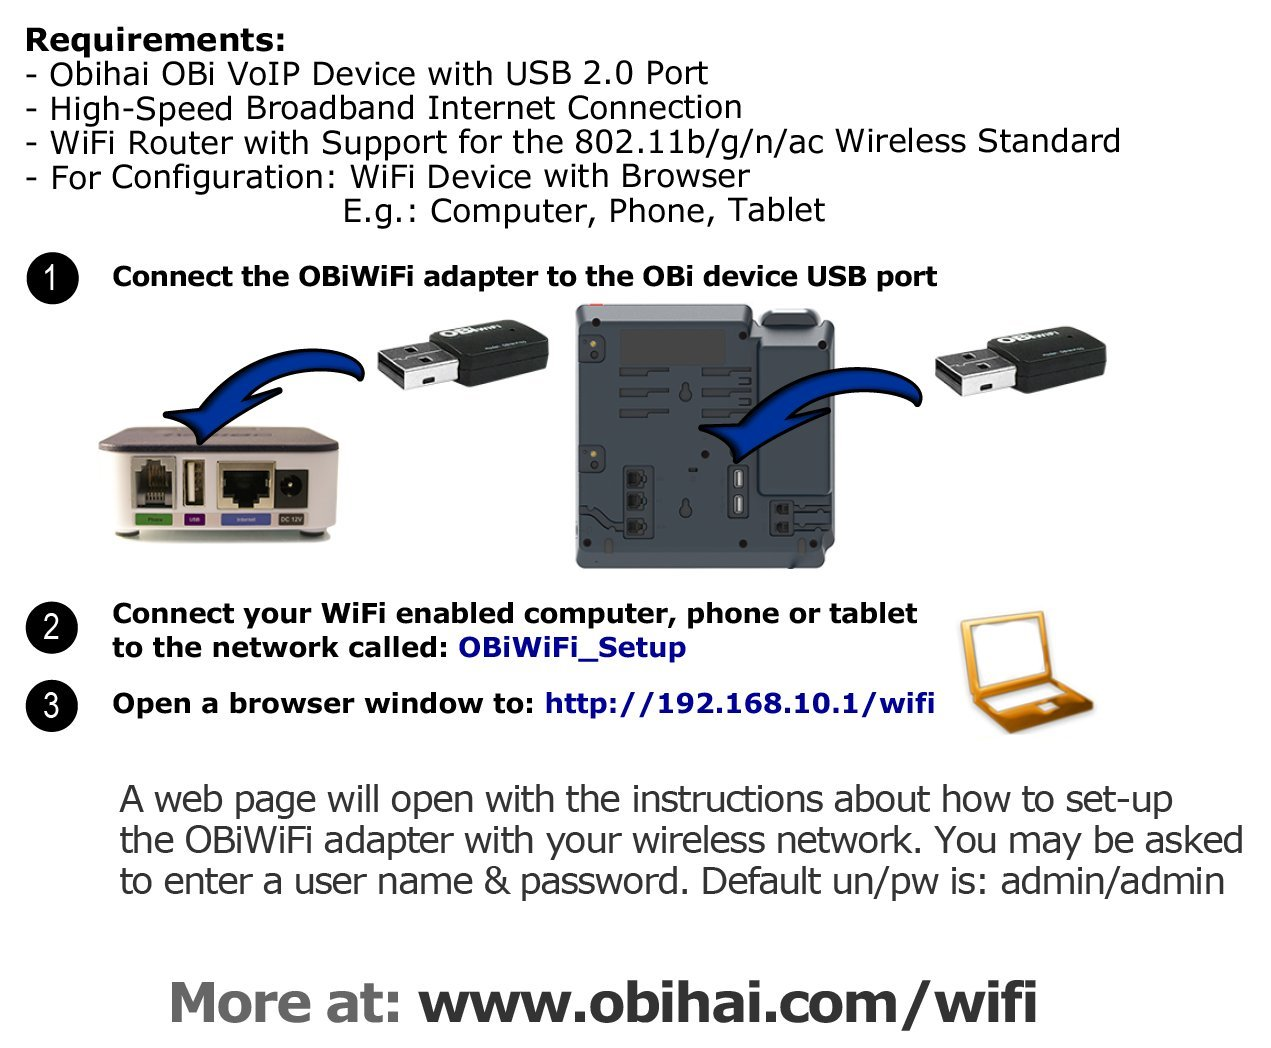 Obihai Technology OBIWIFI5G Obihai OBiWiFi5G 2.4/5GHz Wireless 802.11AC Adapter for OBi200, OBi202, OBi1022, OBi1032, OBi1062 VoIP Phone and Device